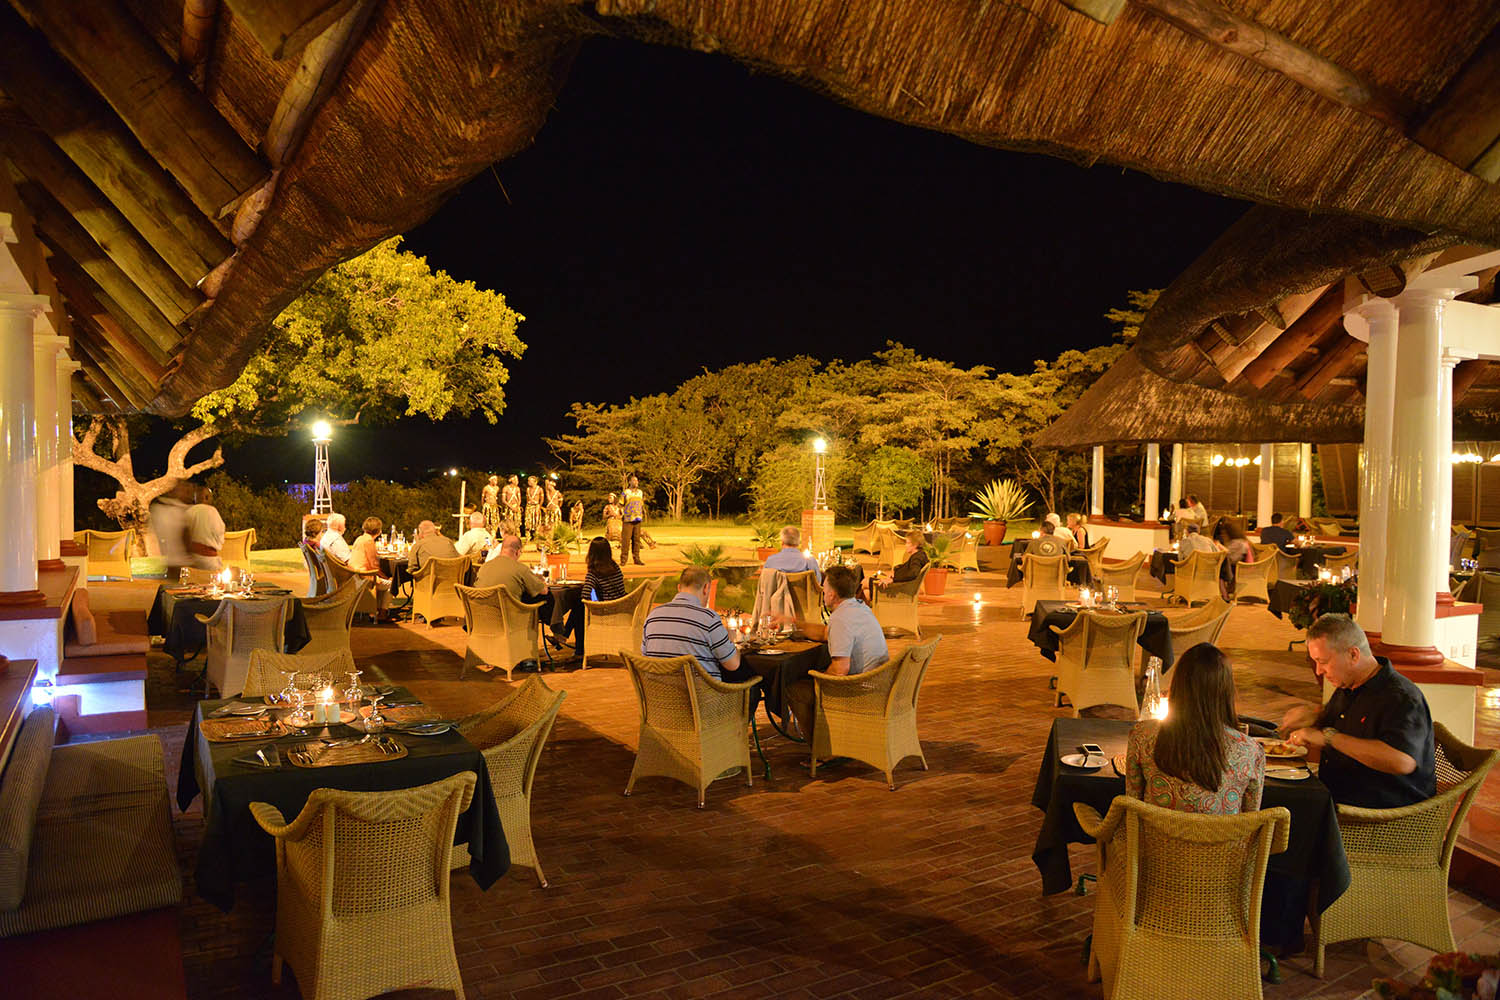 victoria falls hotel zimbabwe-accommodation-elegant-luxury-hotel-zambia-in-style-restaurants-evening-dining